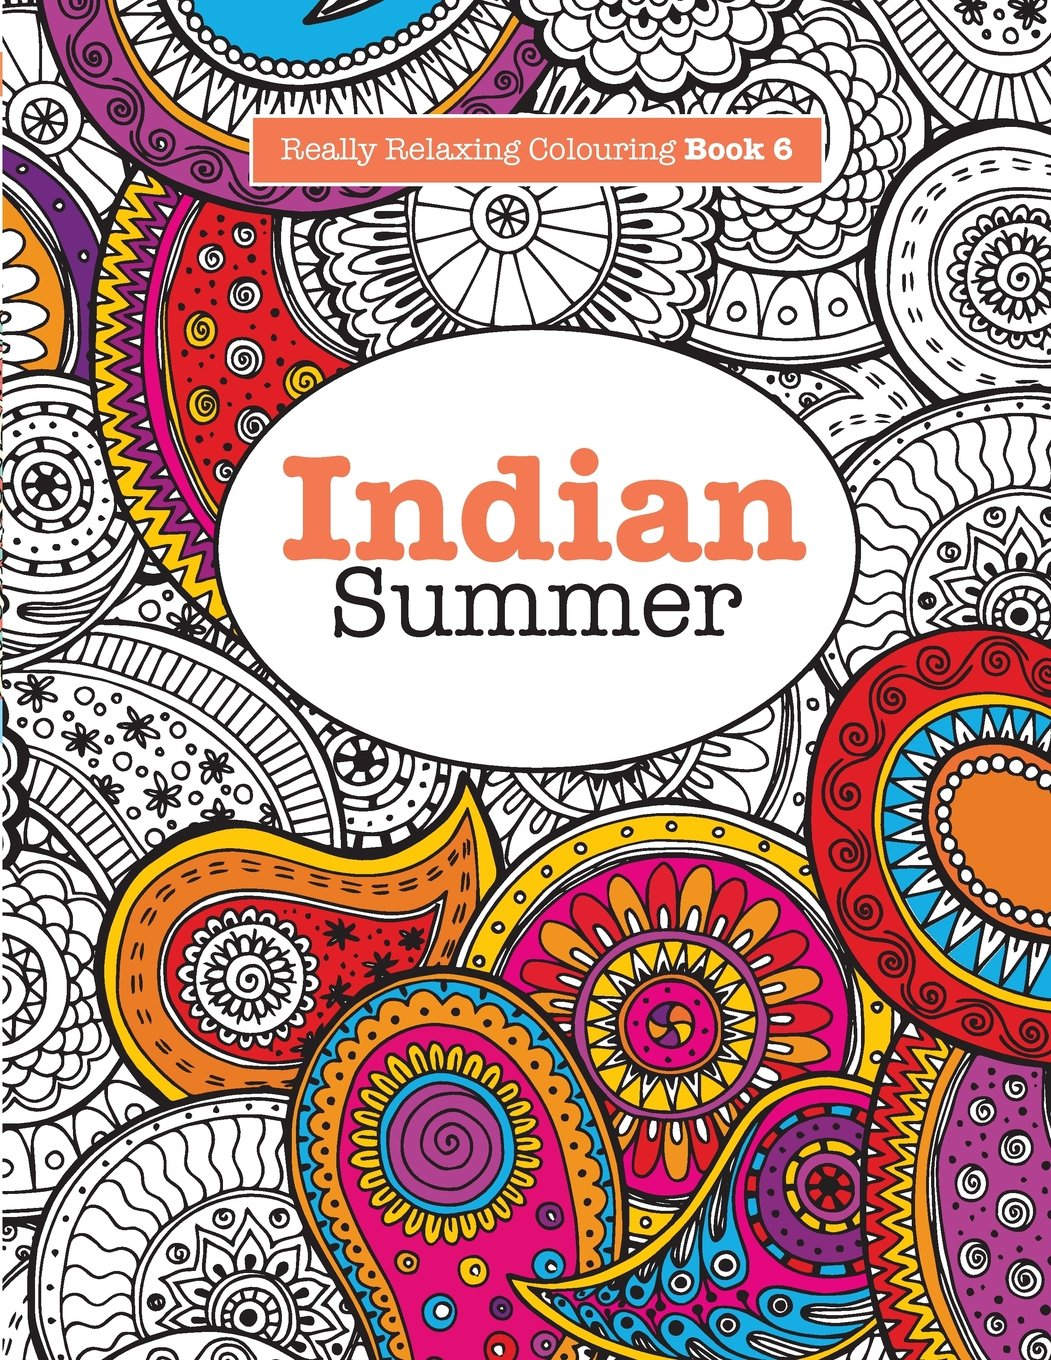 Coloring book color of art - Amazon Com Really Relaxing Colouring Book 6 Indian Summer A Jewelled Journey Through Indian Pattern And Colour Really Relaxing Colouring Books Volume